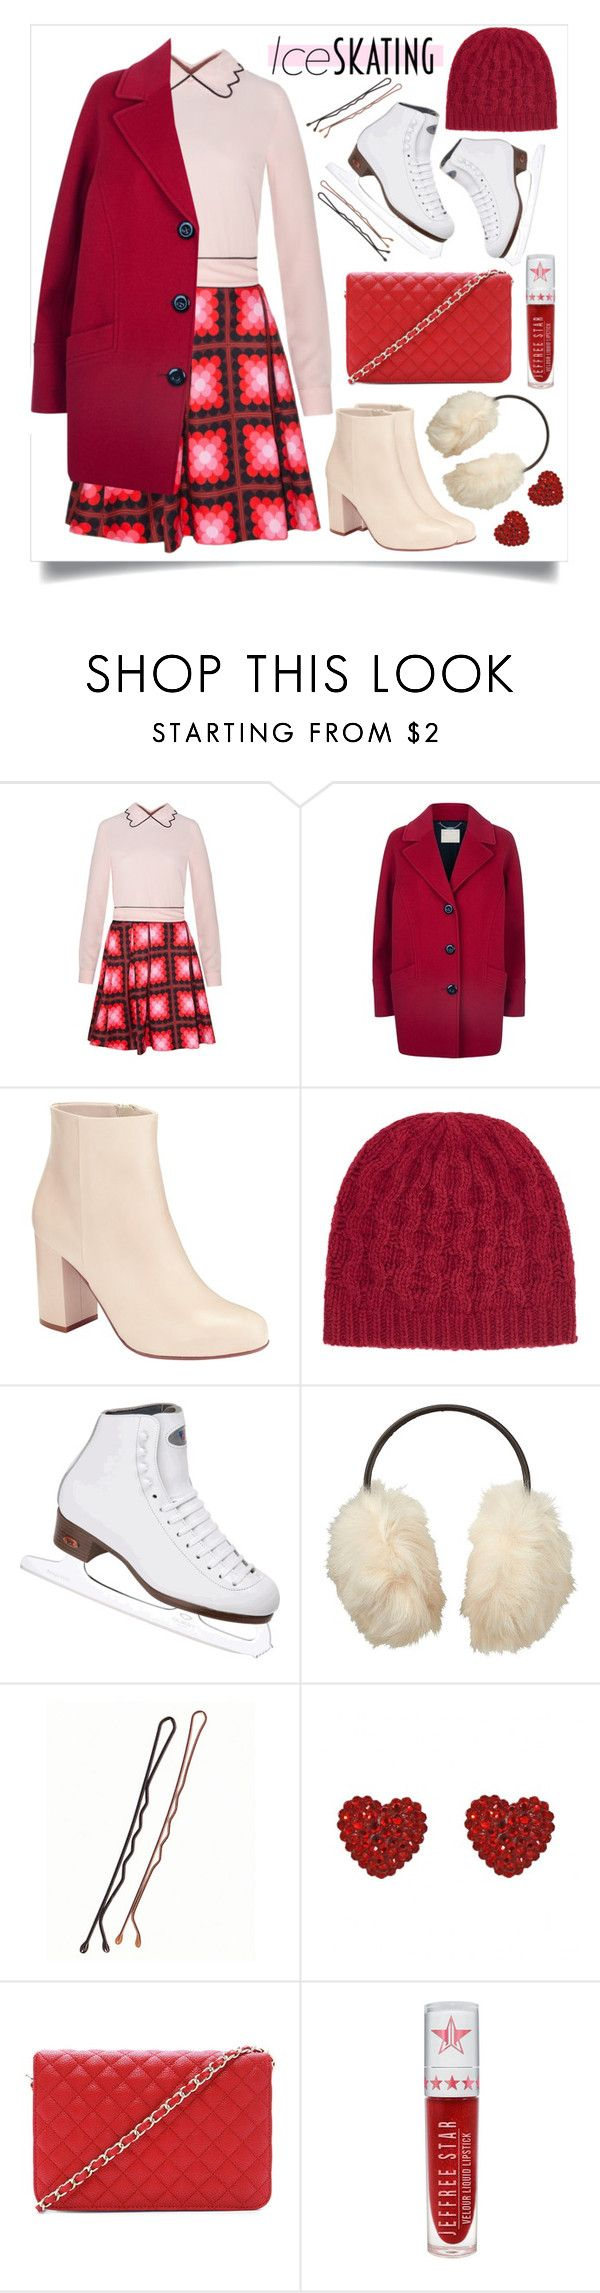 """""""So Cute: Ice Skating Style"""" by alaria ❤ liked on Polyvore featuring Sister Jane, Windsmoor, Kin by John Lewis, John Lewis, Riedell, Uniqlo, Tarina Tarantino, Forever 21, Jeffree Star and women's clothing"""